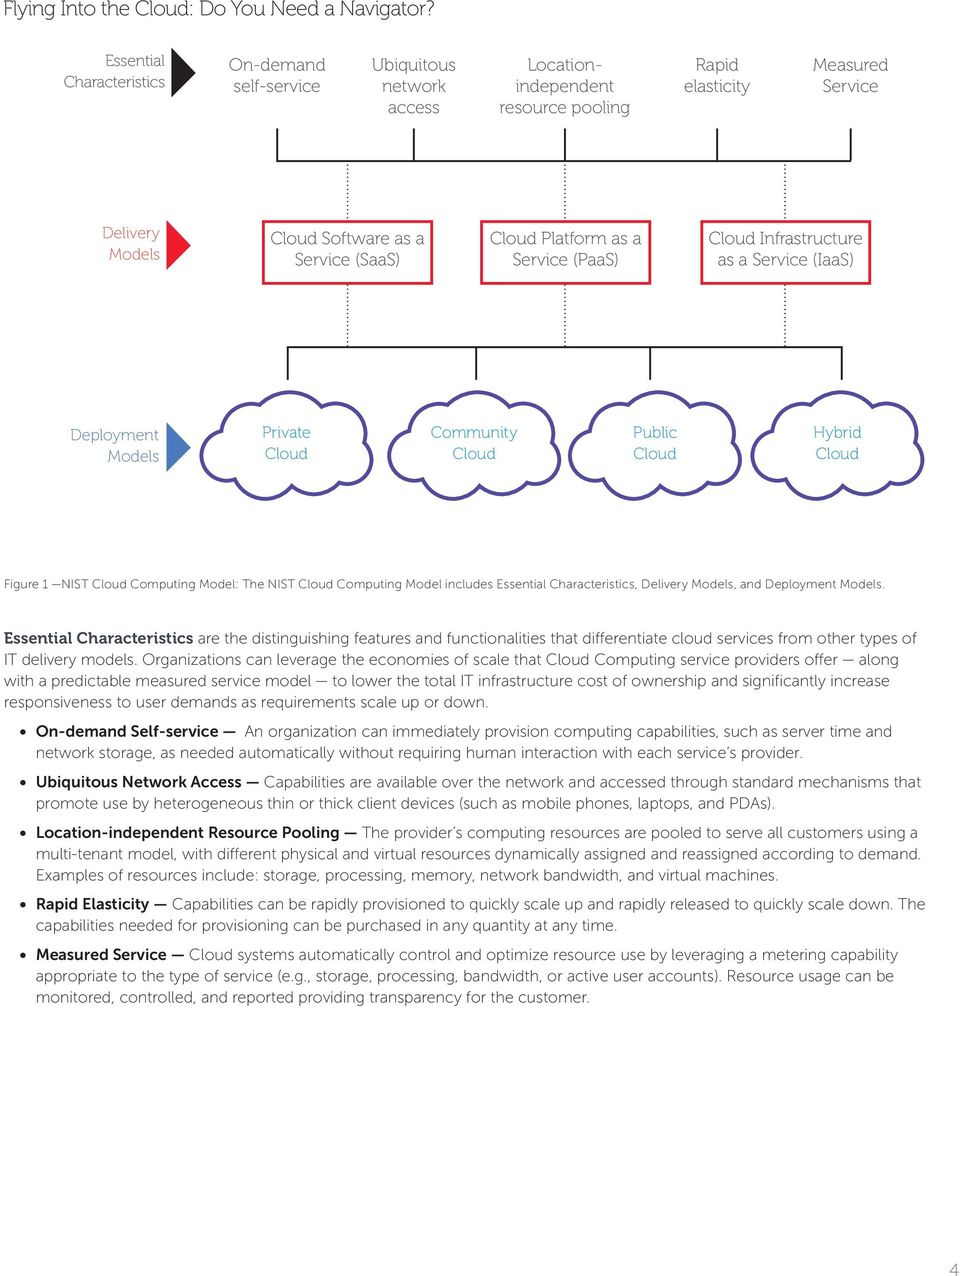 Cloud Computing Model includes Essential Characteristics, Delivery Models, and Deployment Models.